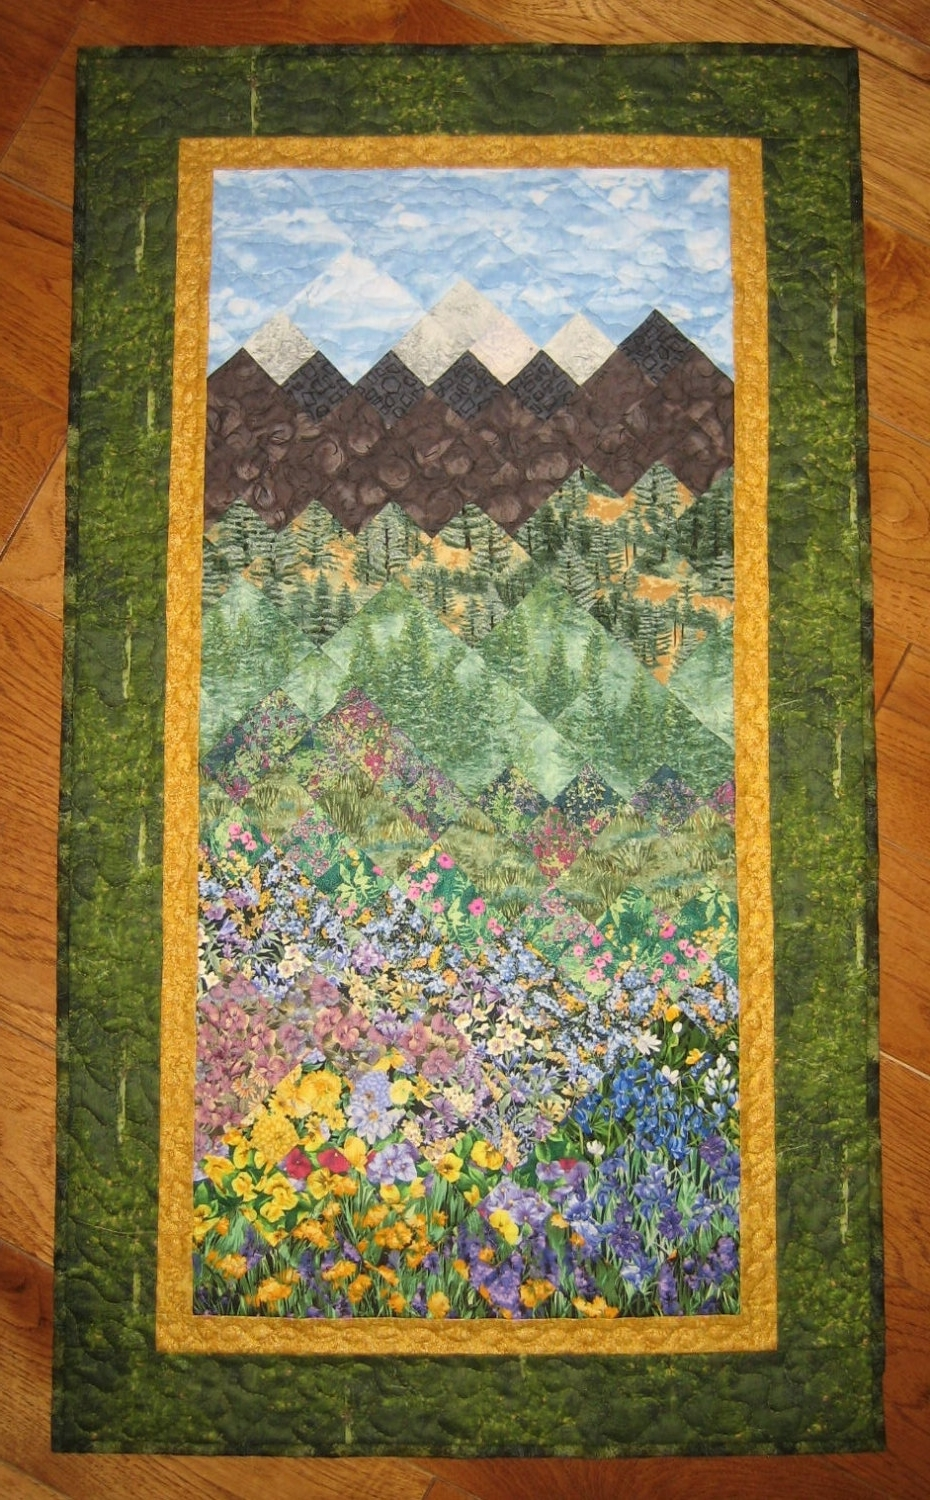 Art Quilt Fabric Wallhanging Pine Trees Mountain Flowers Handmade Pertaining To Latest Fabric Collage Wall Art (View 1 of 15)